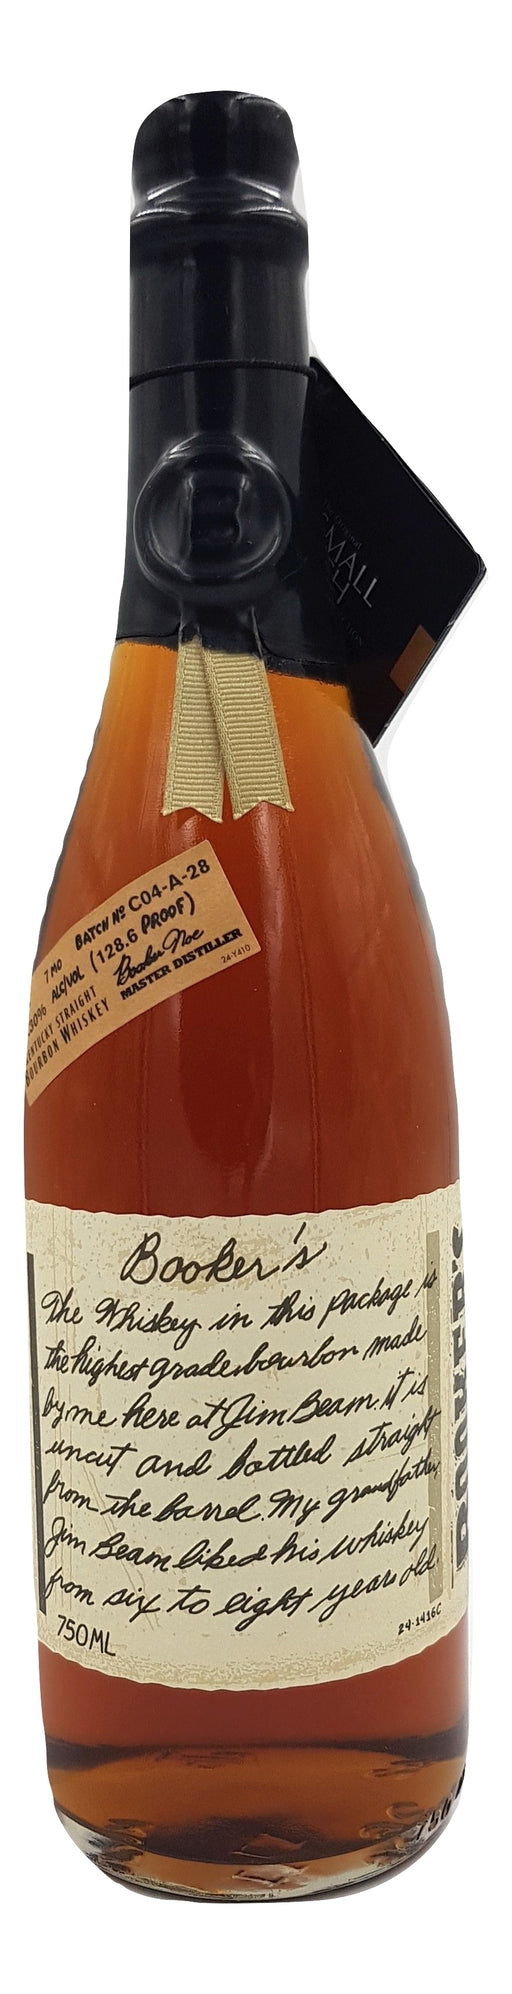 Booker's 7 Year Old Bourbon Batch C04-A-28 For Sale - NativeSpiritsOnline